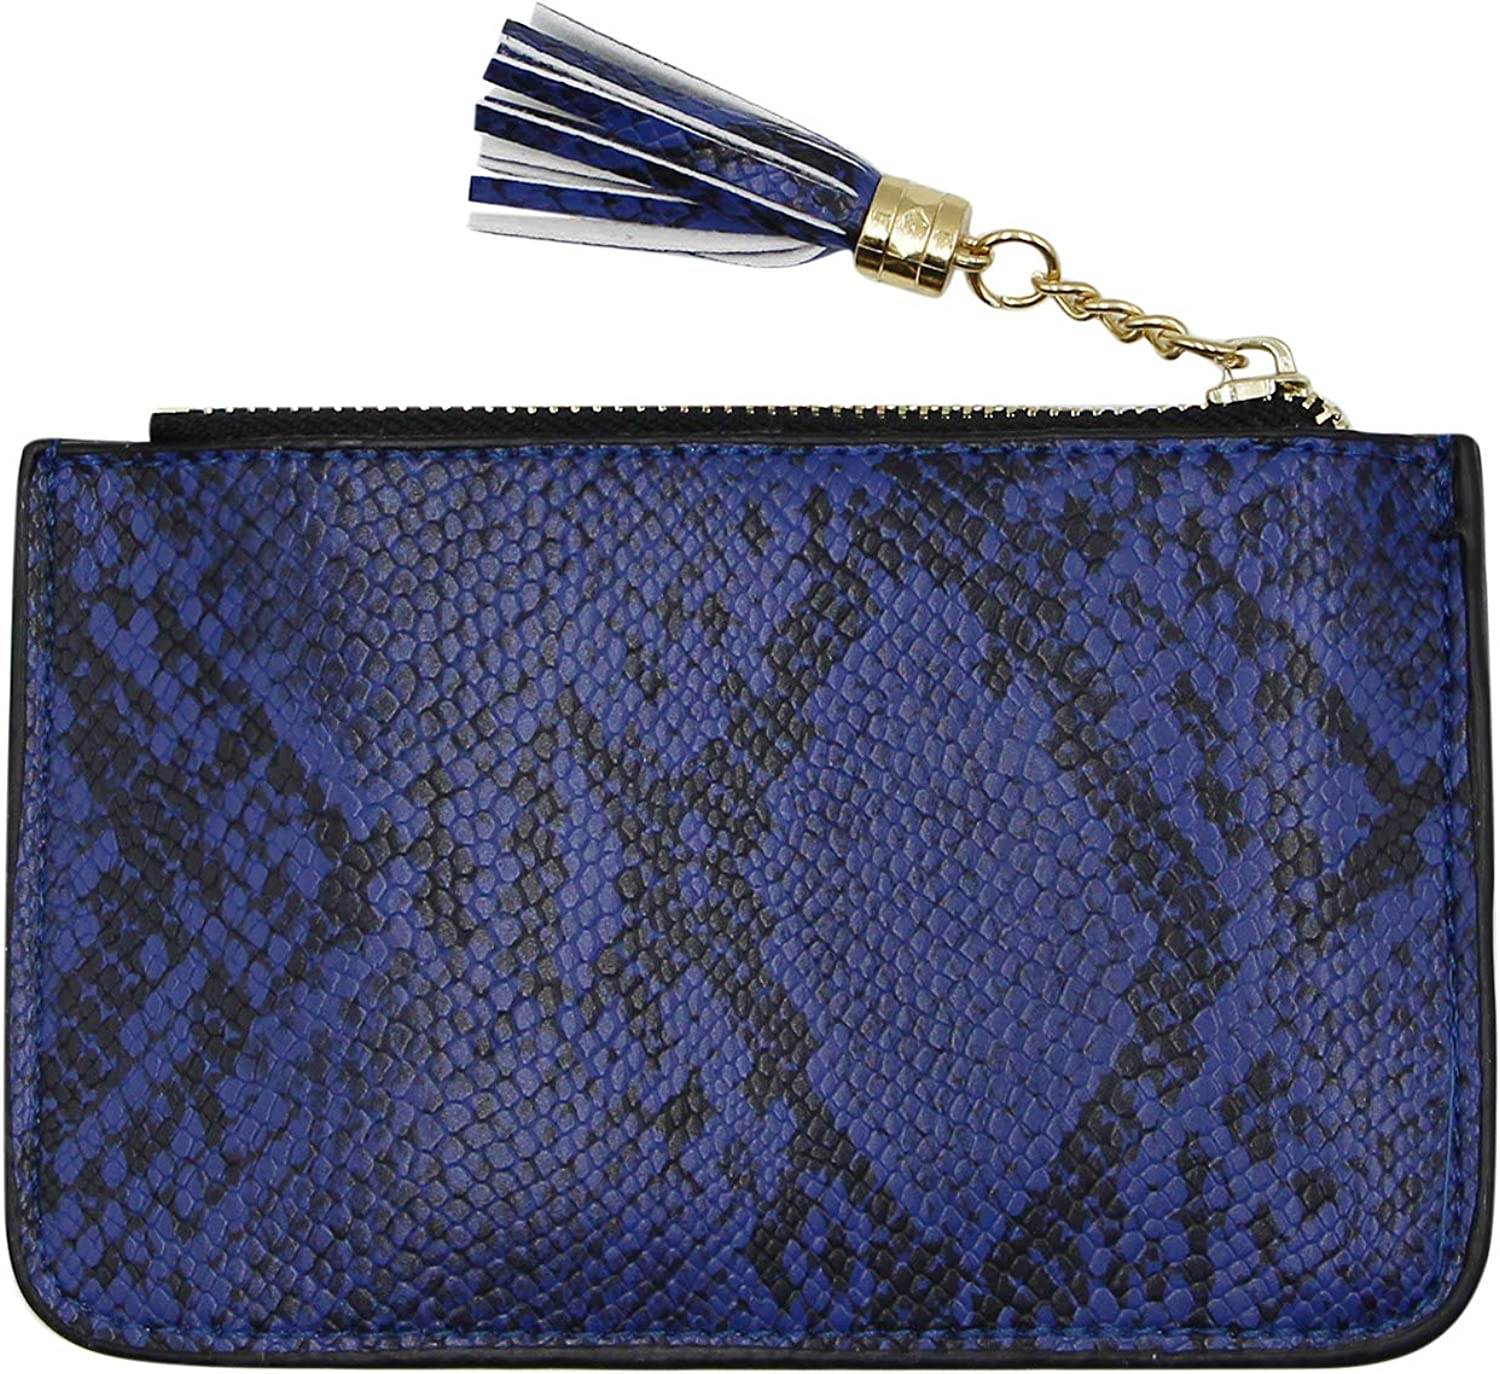 Amazon Com Suillty Women Snakeskin Leather Coin Purse Credit Card Holder Wallet Pouch With Key Chain Tassel Zip Shoes